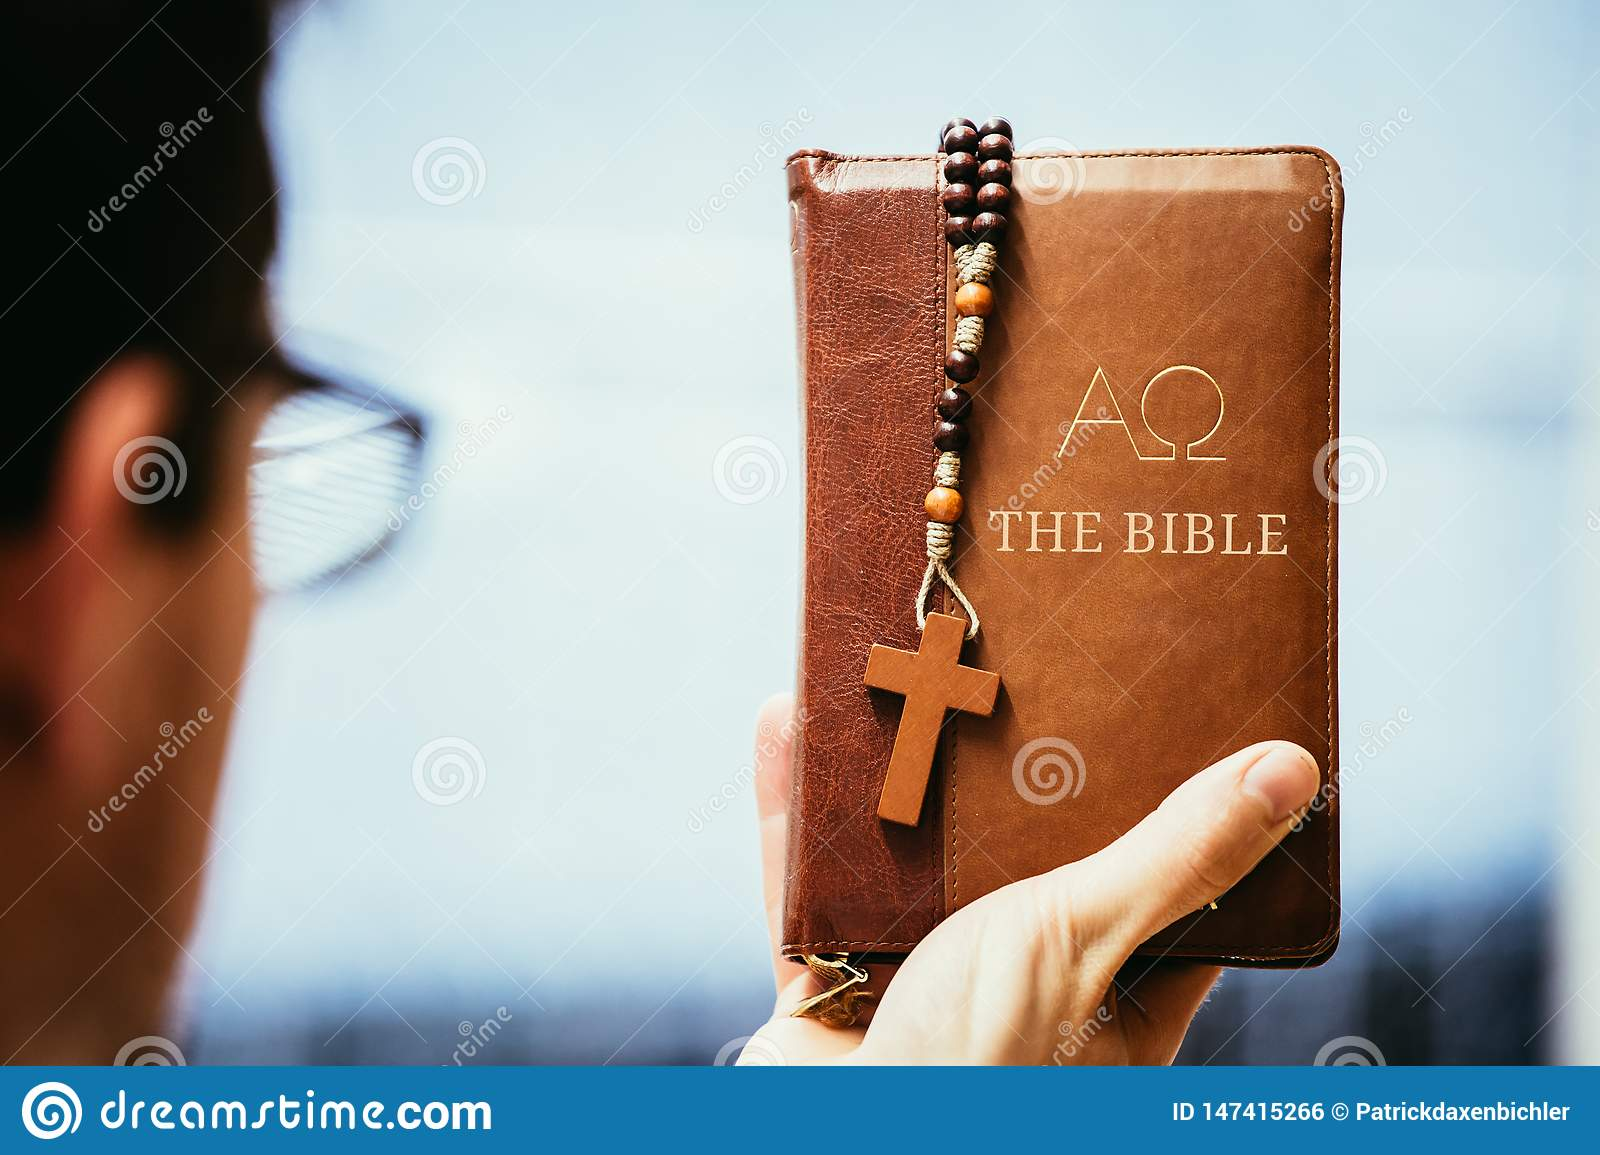 Christian preacher: Young man is holding the bible, praying